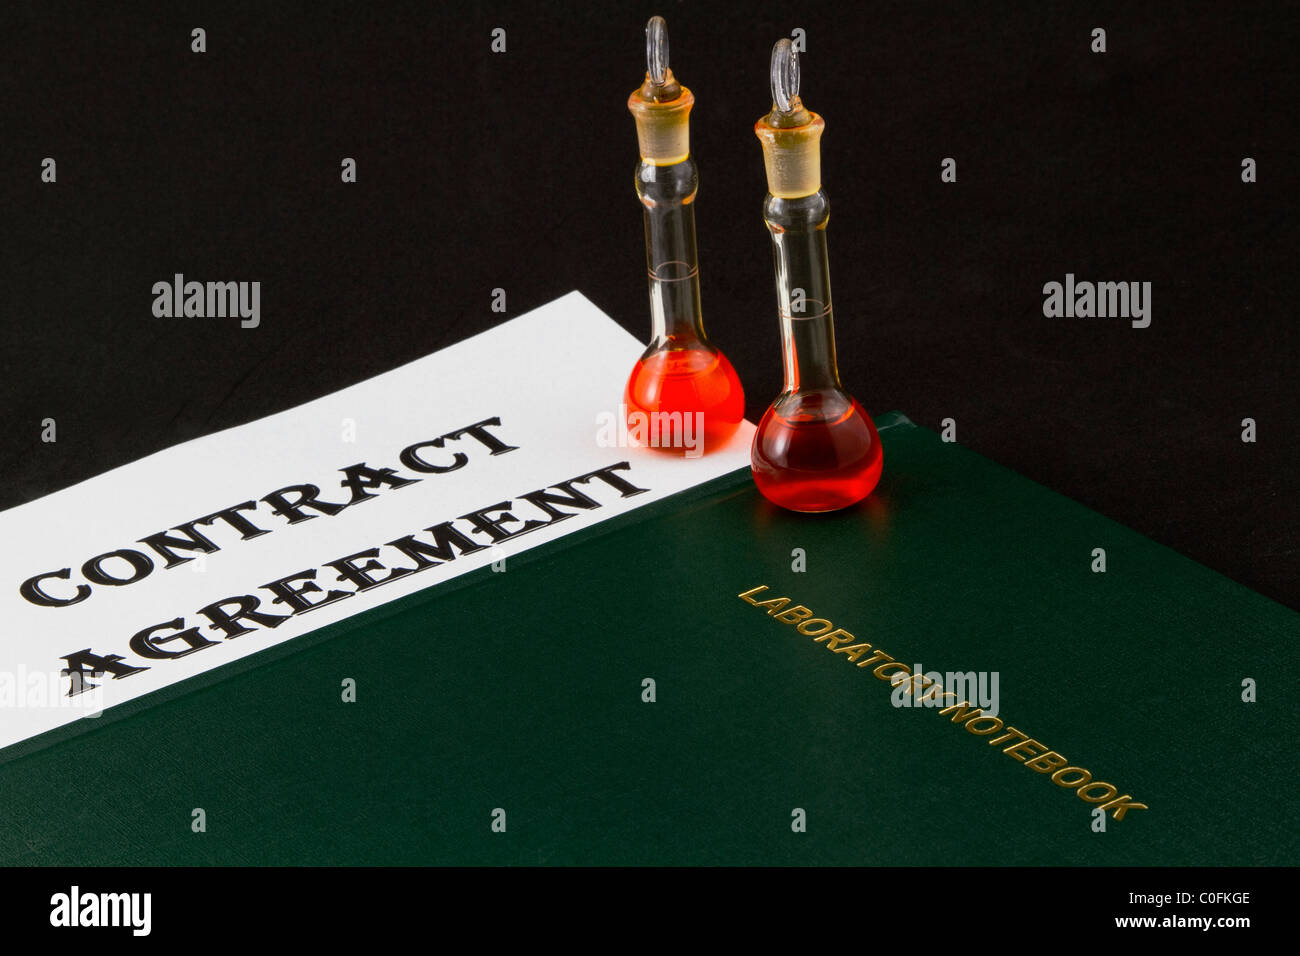 Contract Agreement with two beakers and a laboratory notebook reflects scientific big business efforts. - Stock Image